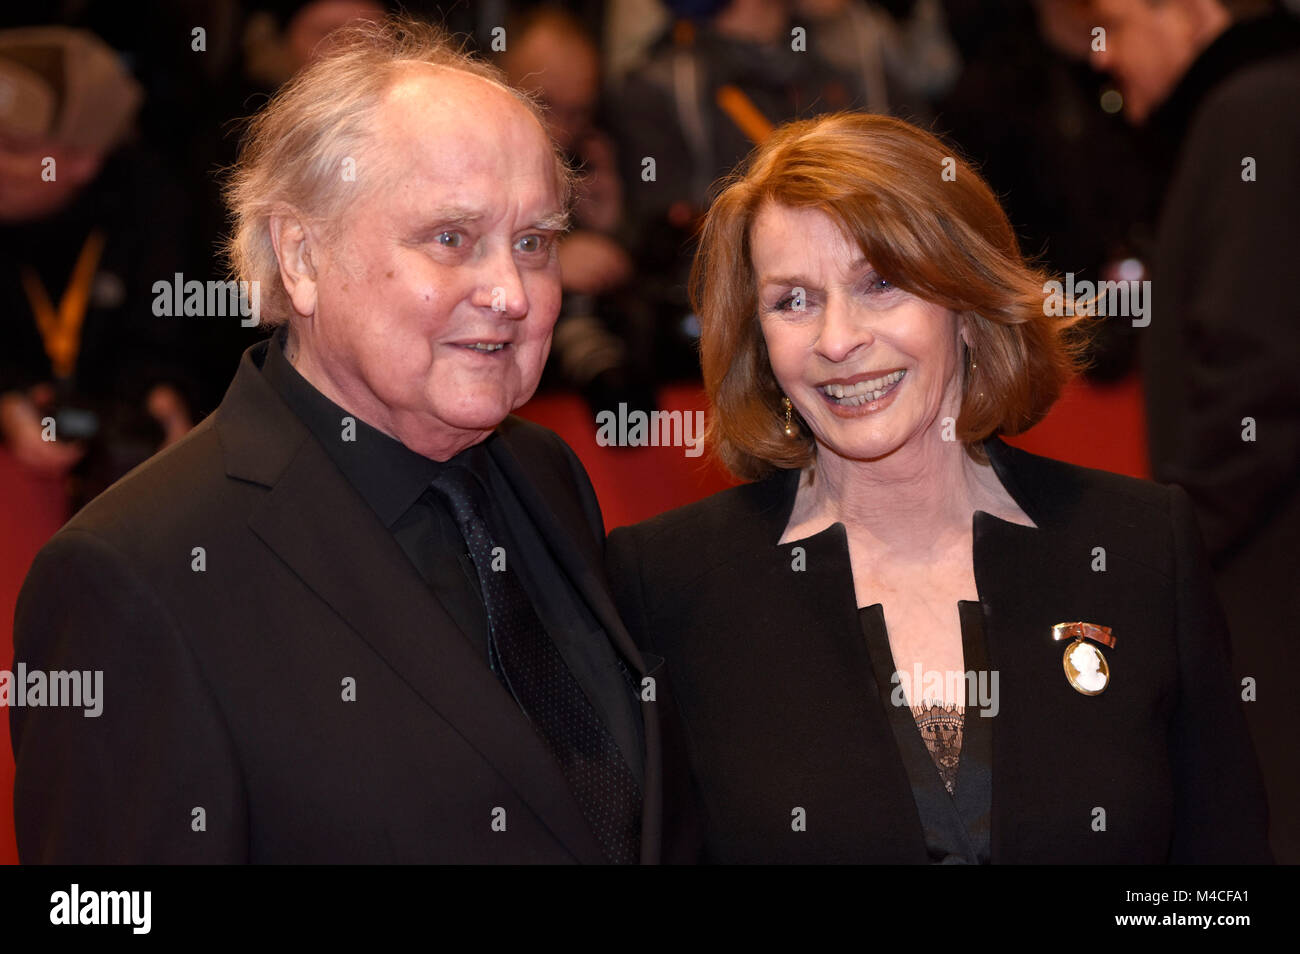 berlin deutschland 15 februar 2018 michael verhoeven und senta berger die teilnahme an der. Black Bedroom Furniture Sets. Home Design Ideas